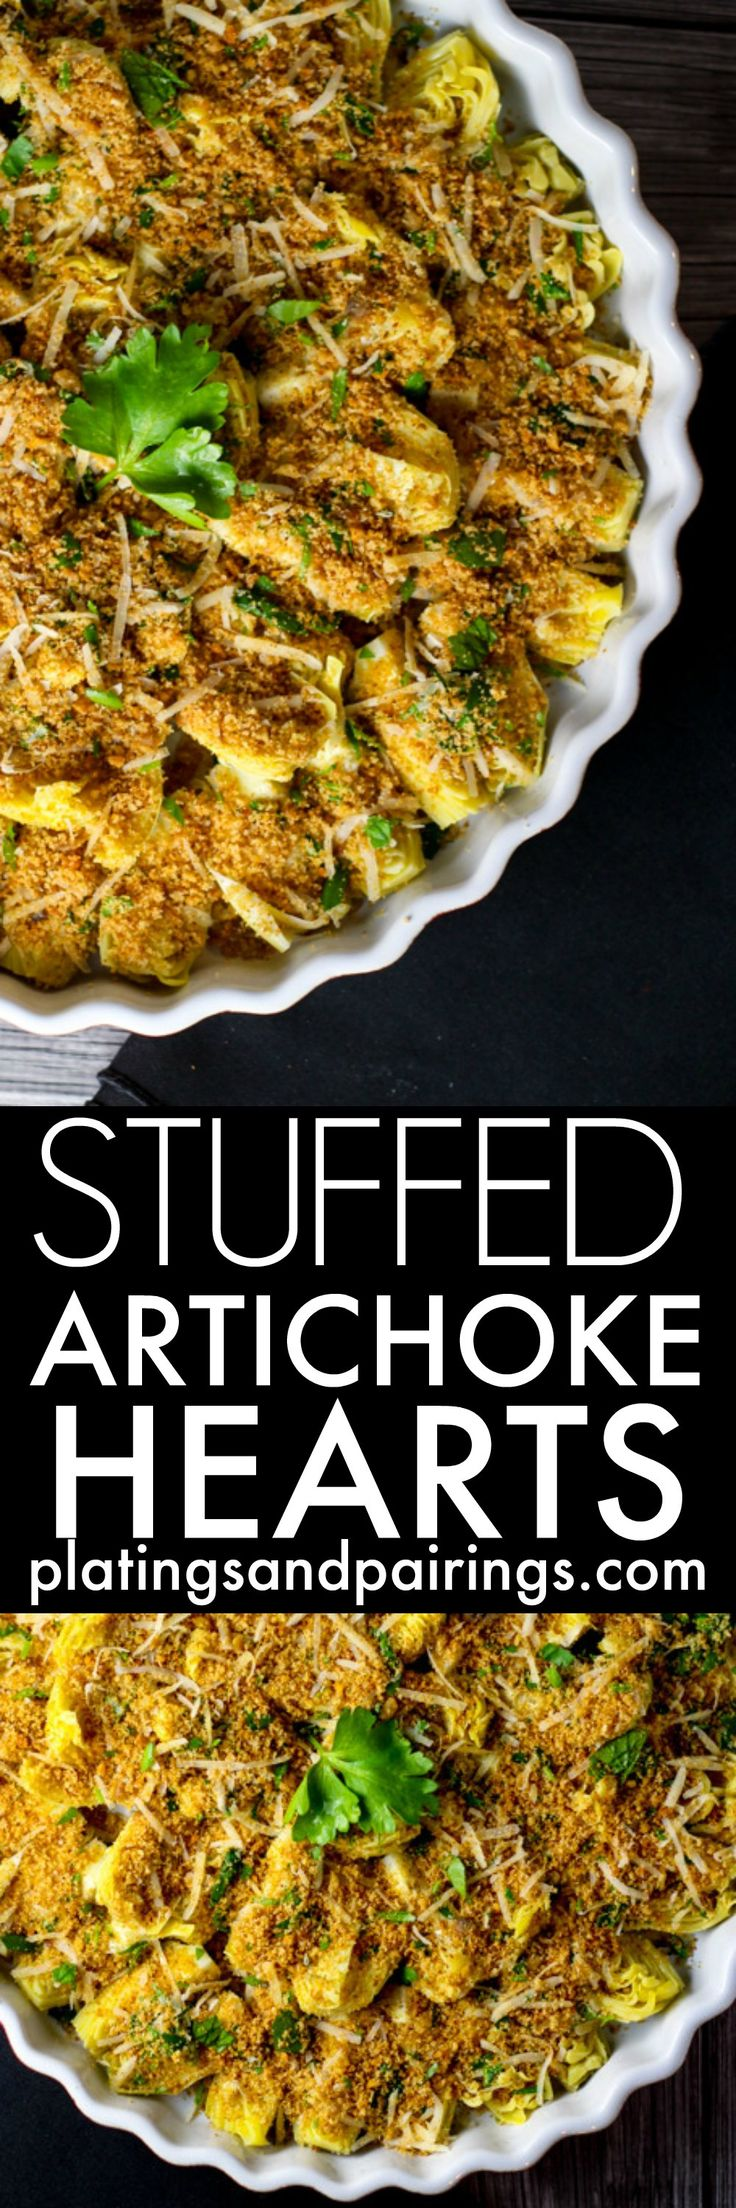 """These Stuffed Artichoke Hearts take all the work out of actually stuffing an artichoke. Canned artichoke hearts are arranged in a dish and topped with a """"stuffing"""" of breadcrumbs, parmesan cheese, and garlic.   platingsandpairings.com"""